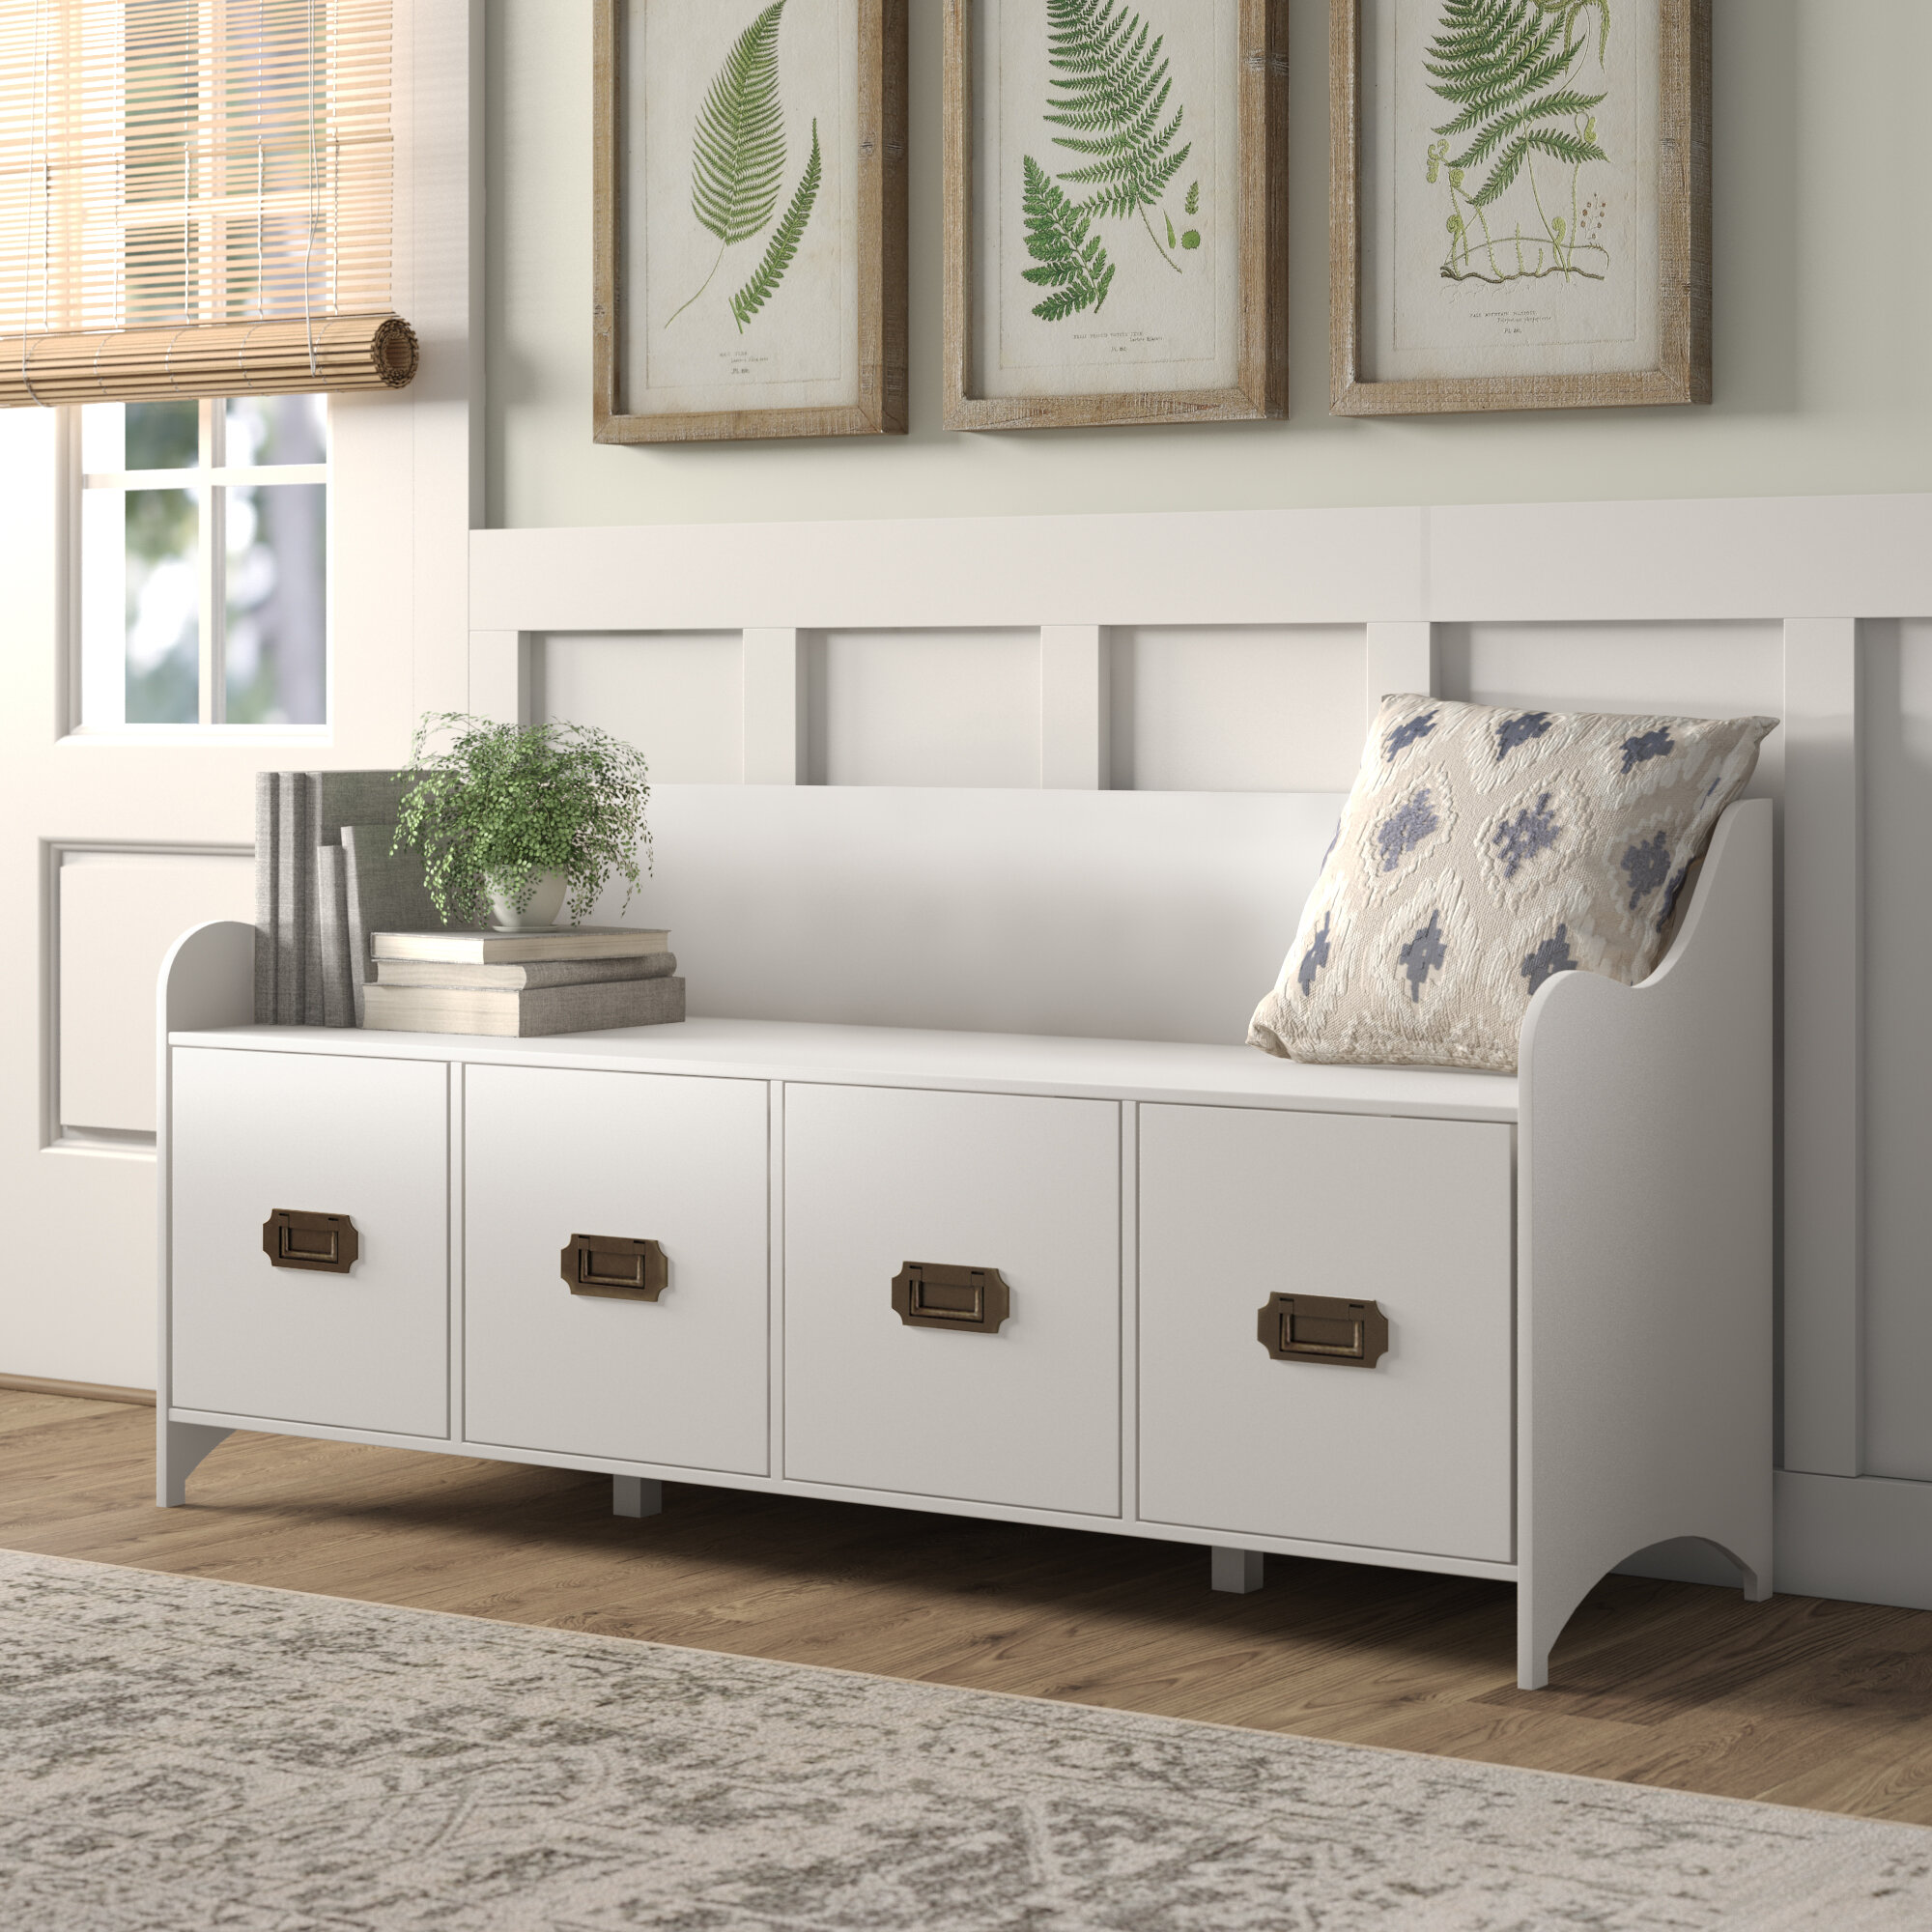 Astonishing Birch Lane Heritage Edwards 4 Drawer Storage Bench Caraccident5 Cool Chair Designs And Ideas Caraccident5Info